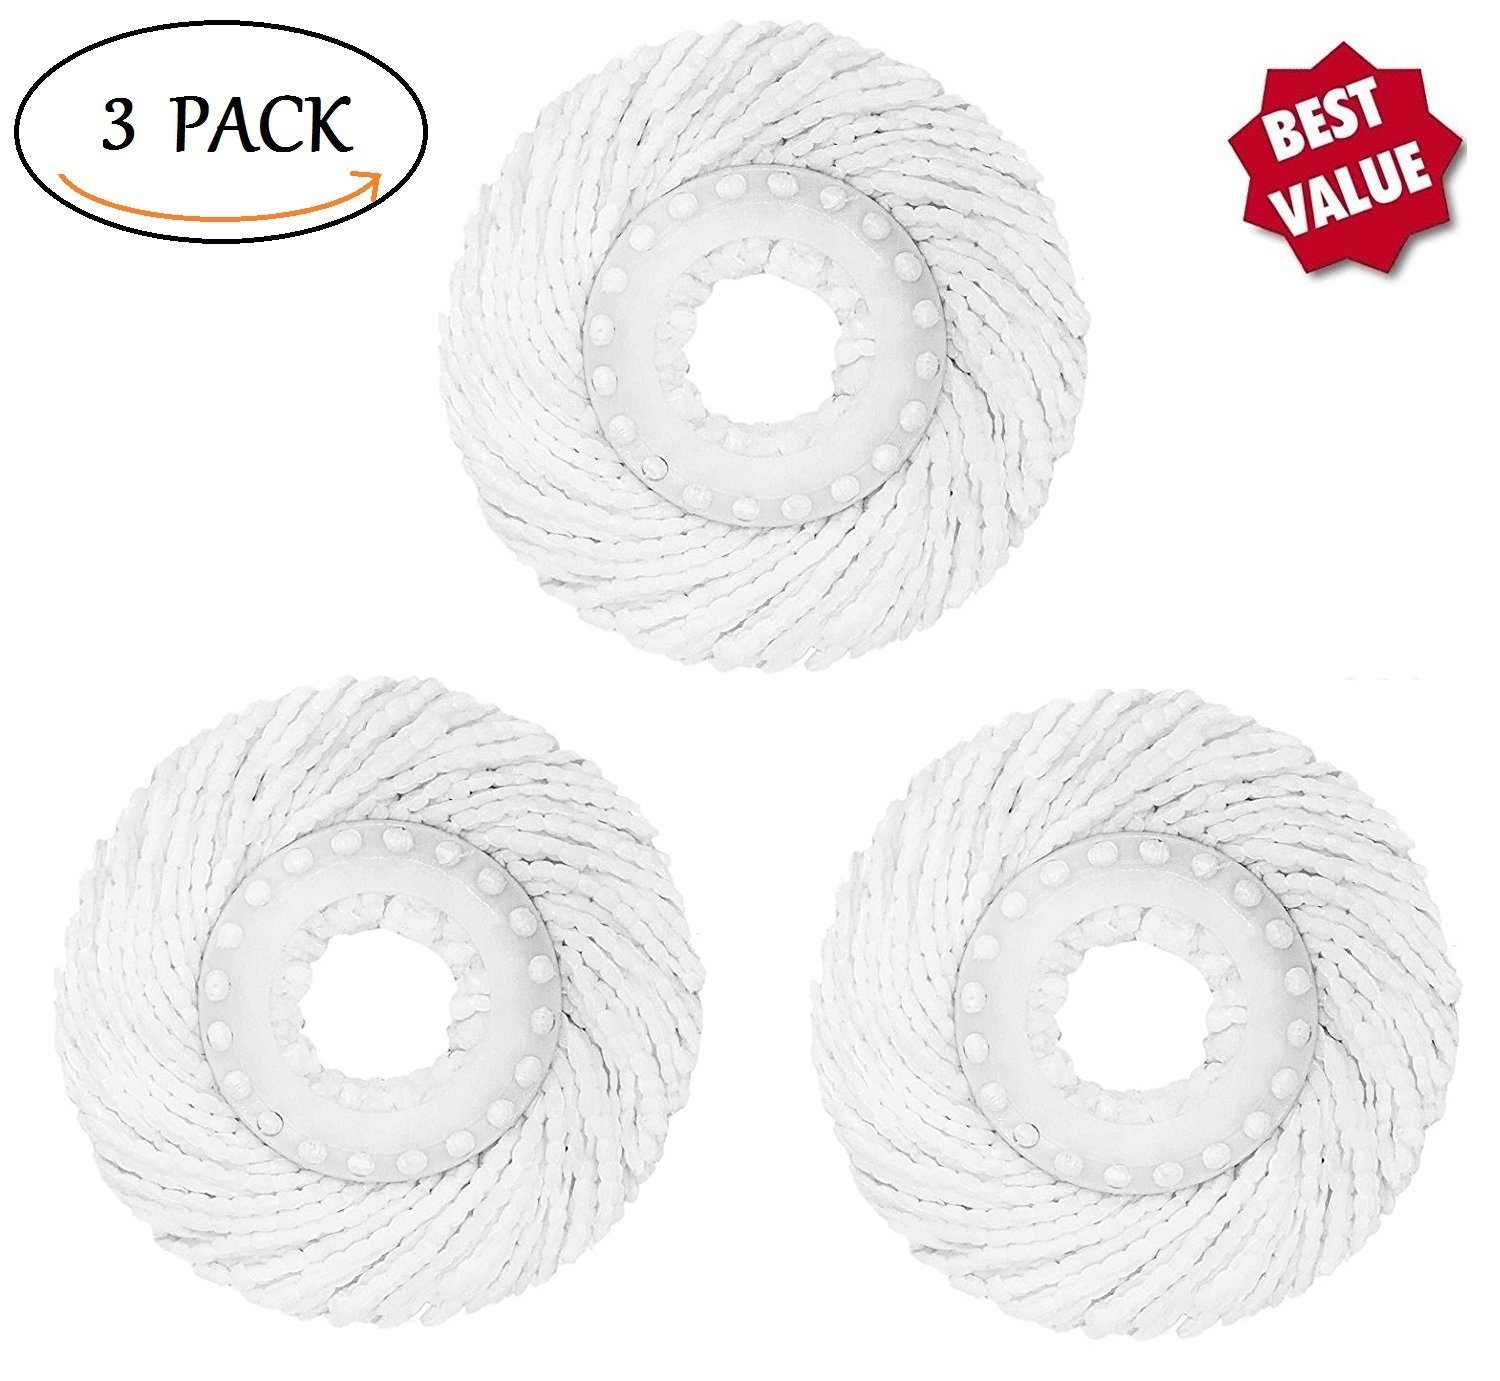 3 Pack High Quality Replacement Micro Mop Head Refill For Standard Universal Spin Mop,... by Bonison